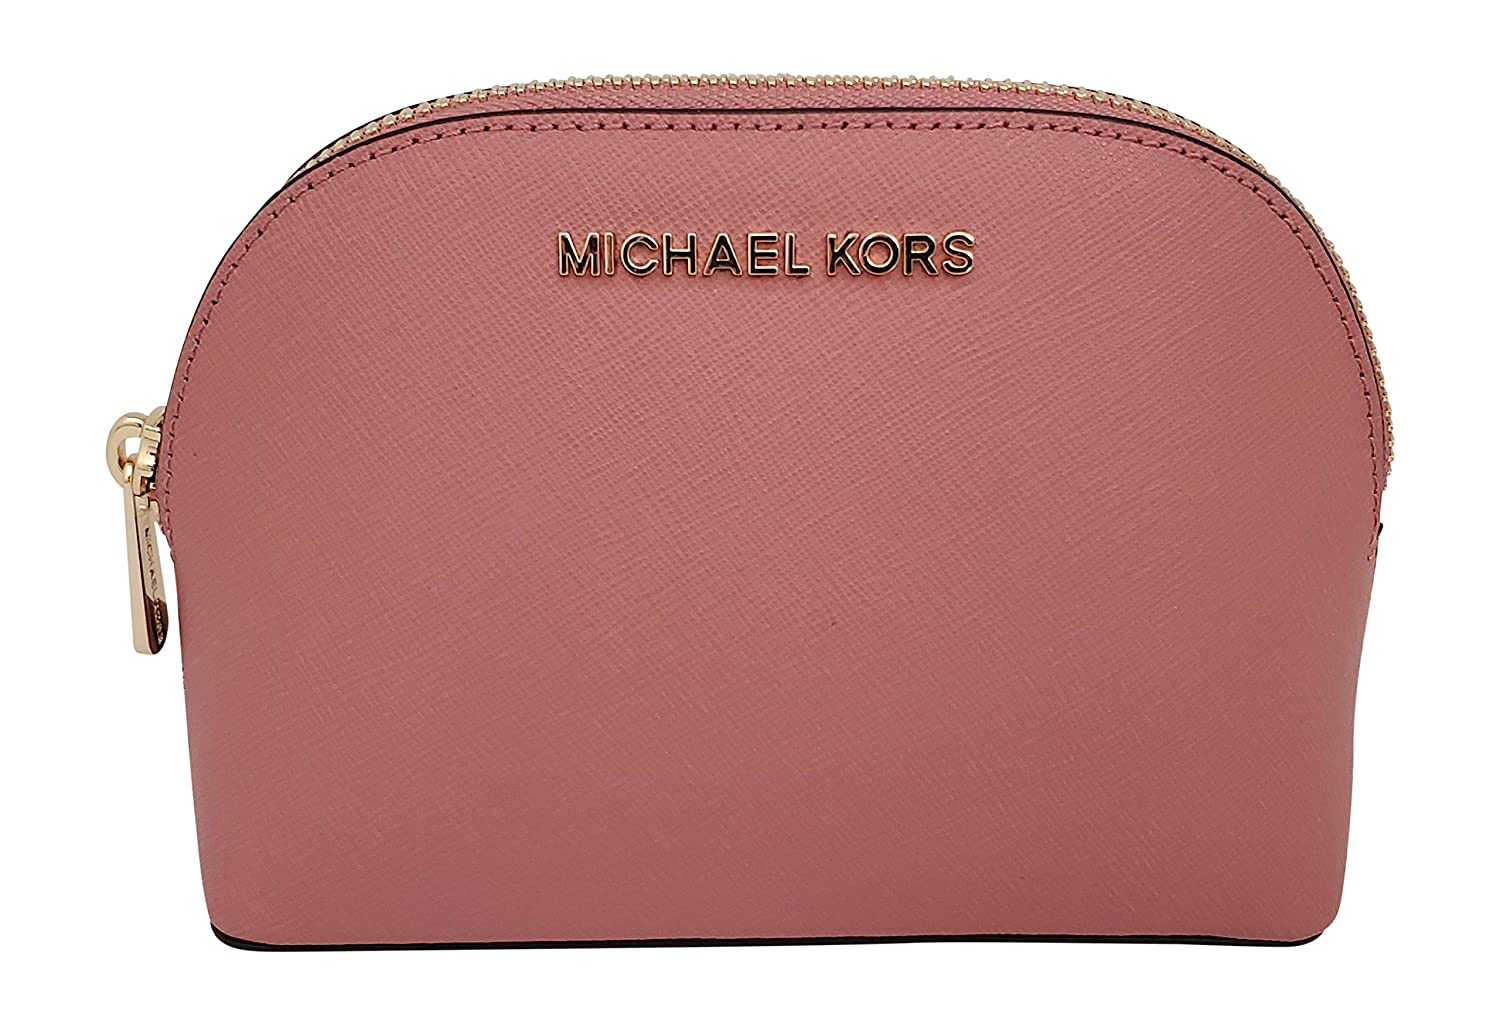 Michael Kors Women's Jet Set Travel Large Leather Pouch Cosmetic Bag Rose